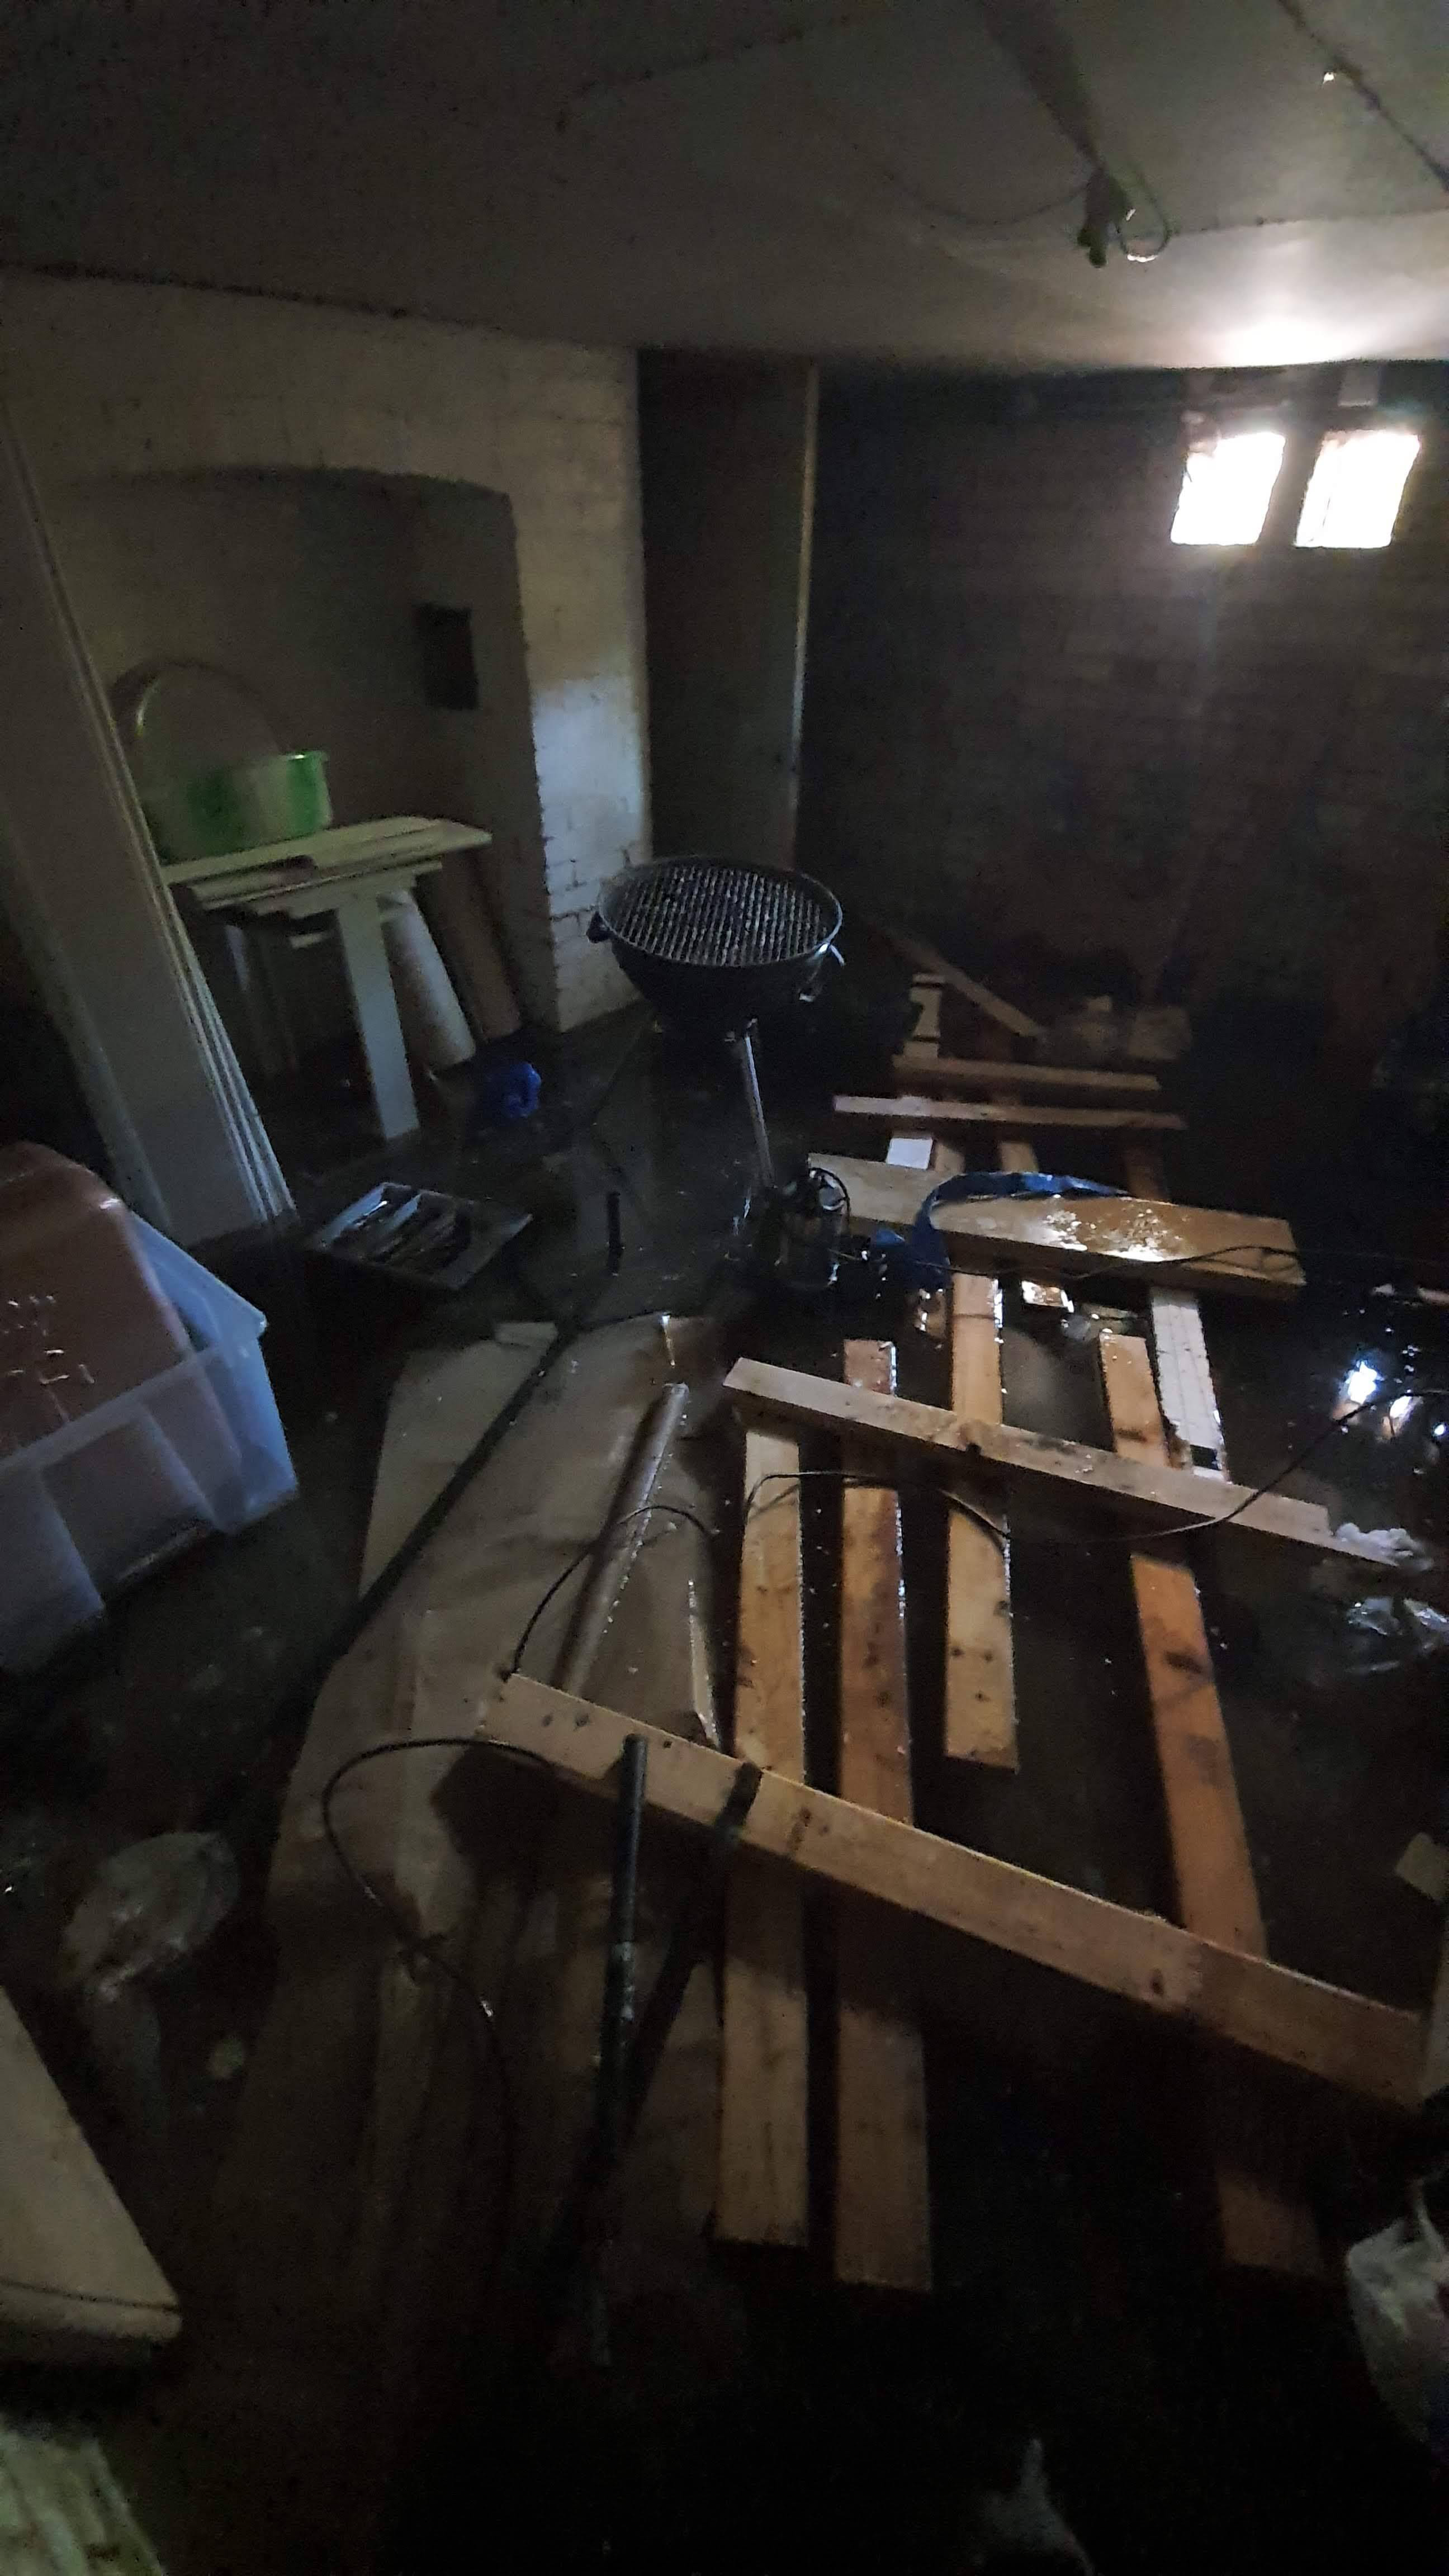 Flooded basement containing water damaged property